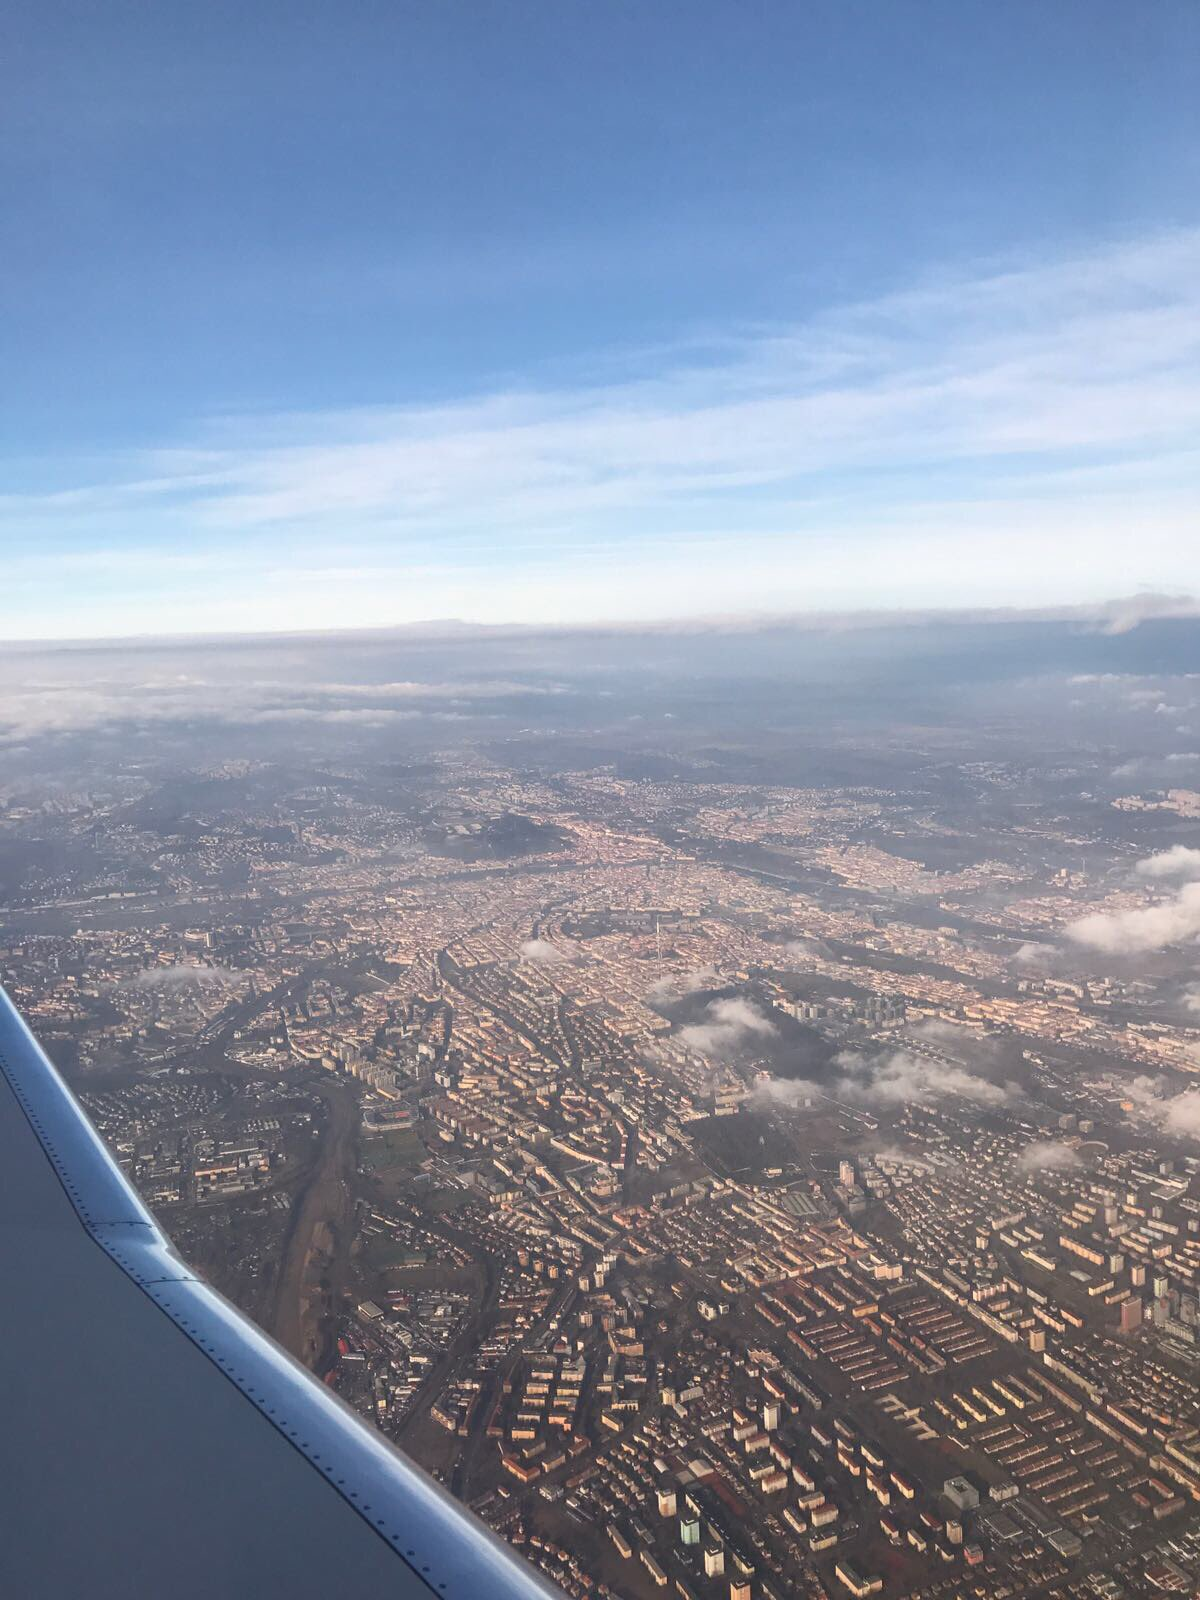 Hello Prague! Look forward to starting the countdown to @LaverCup with @tomasberdych today #LaverCup https://t.co/IT0GLM6jqZ